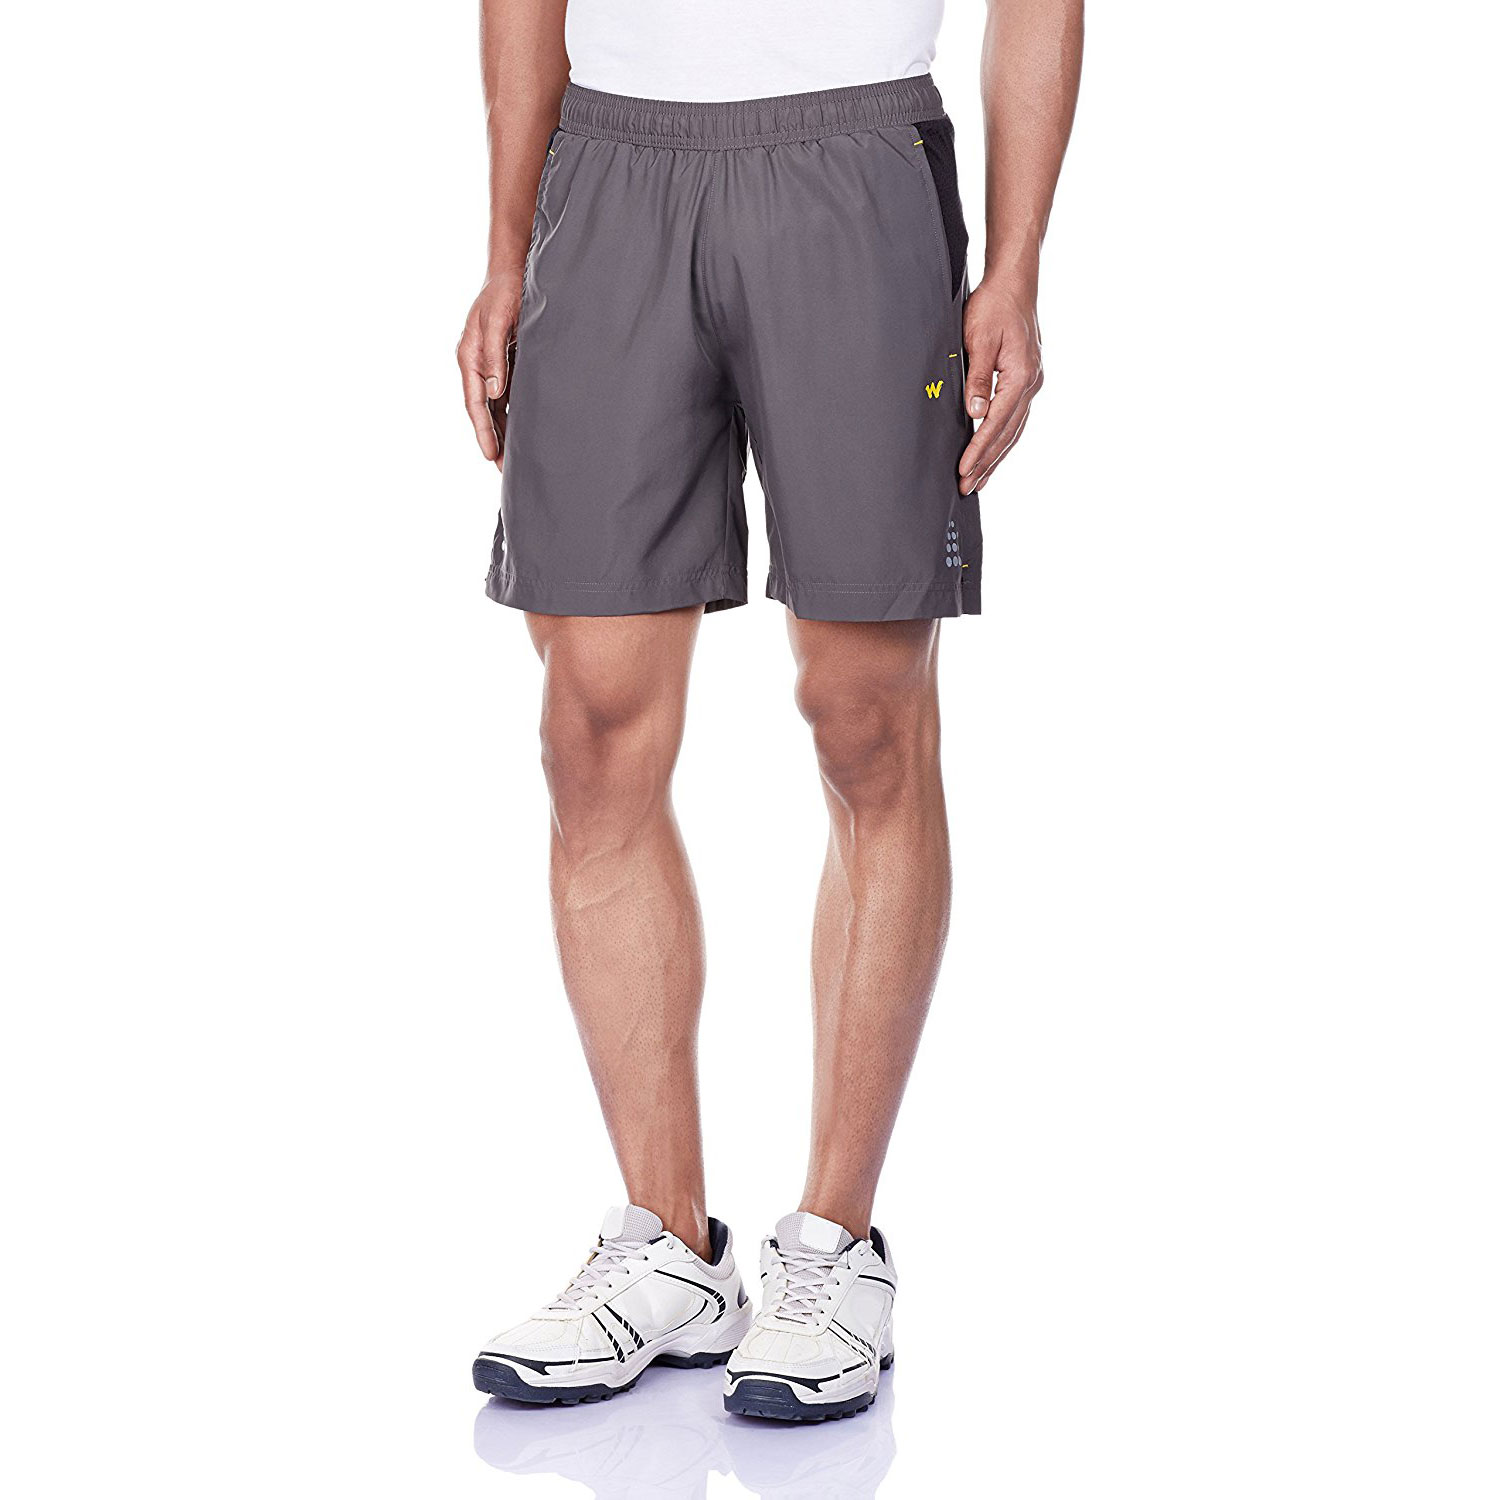 Wildcraft Men's Shorts